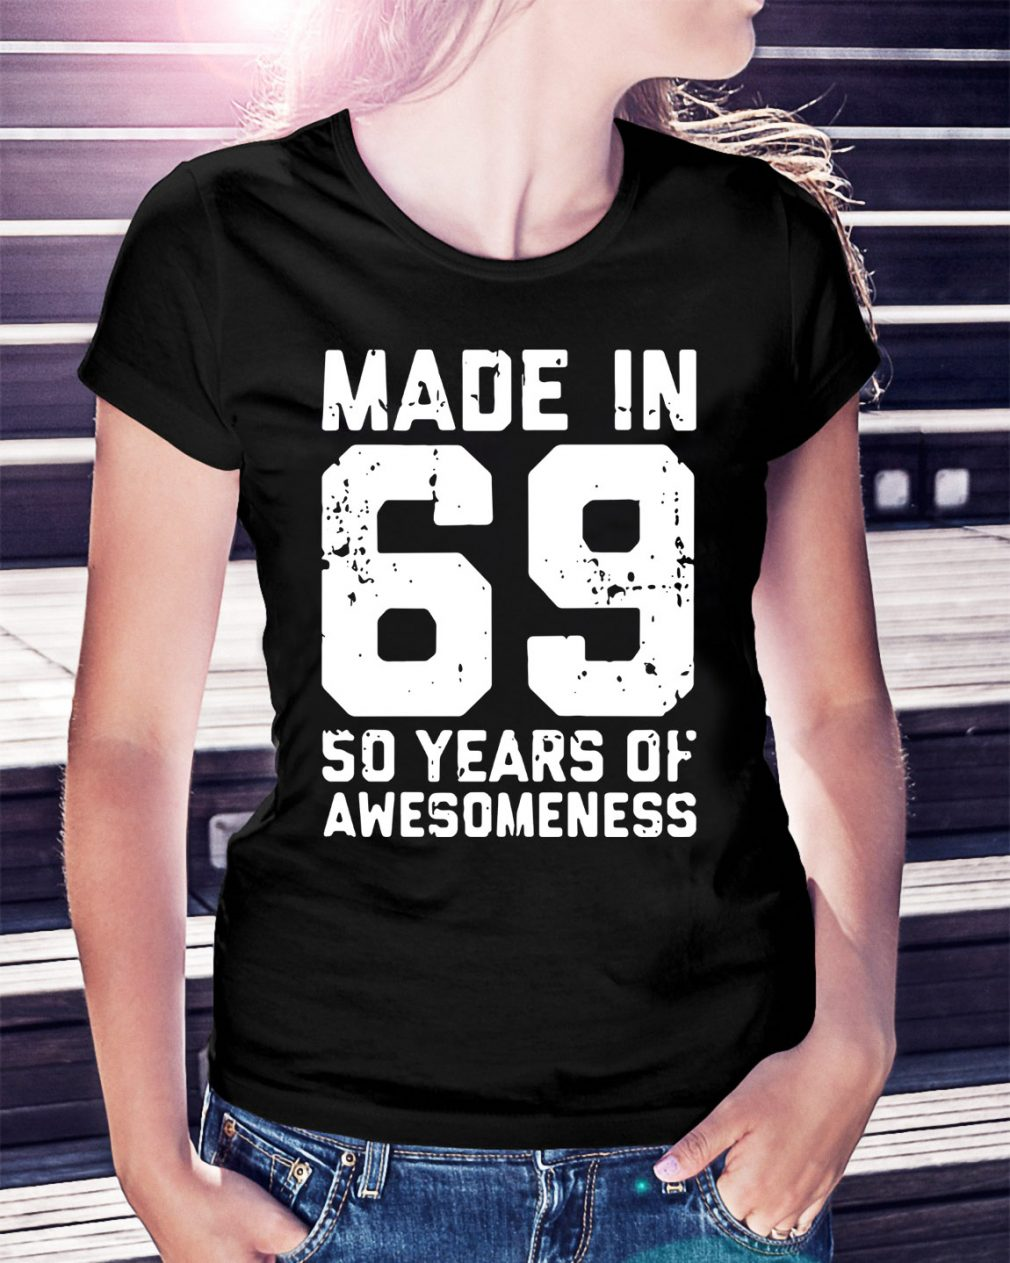 Made in 69 50 years of awesomeness Ladies Tee